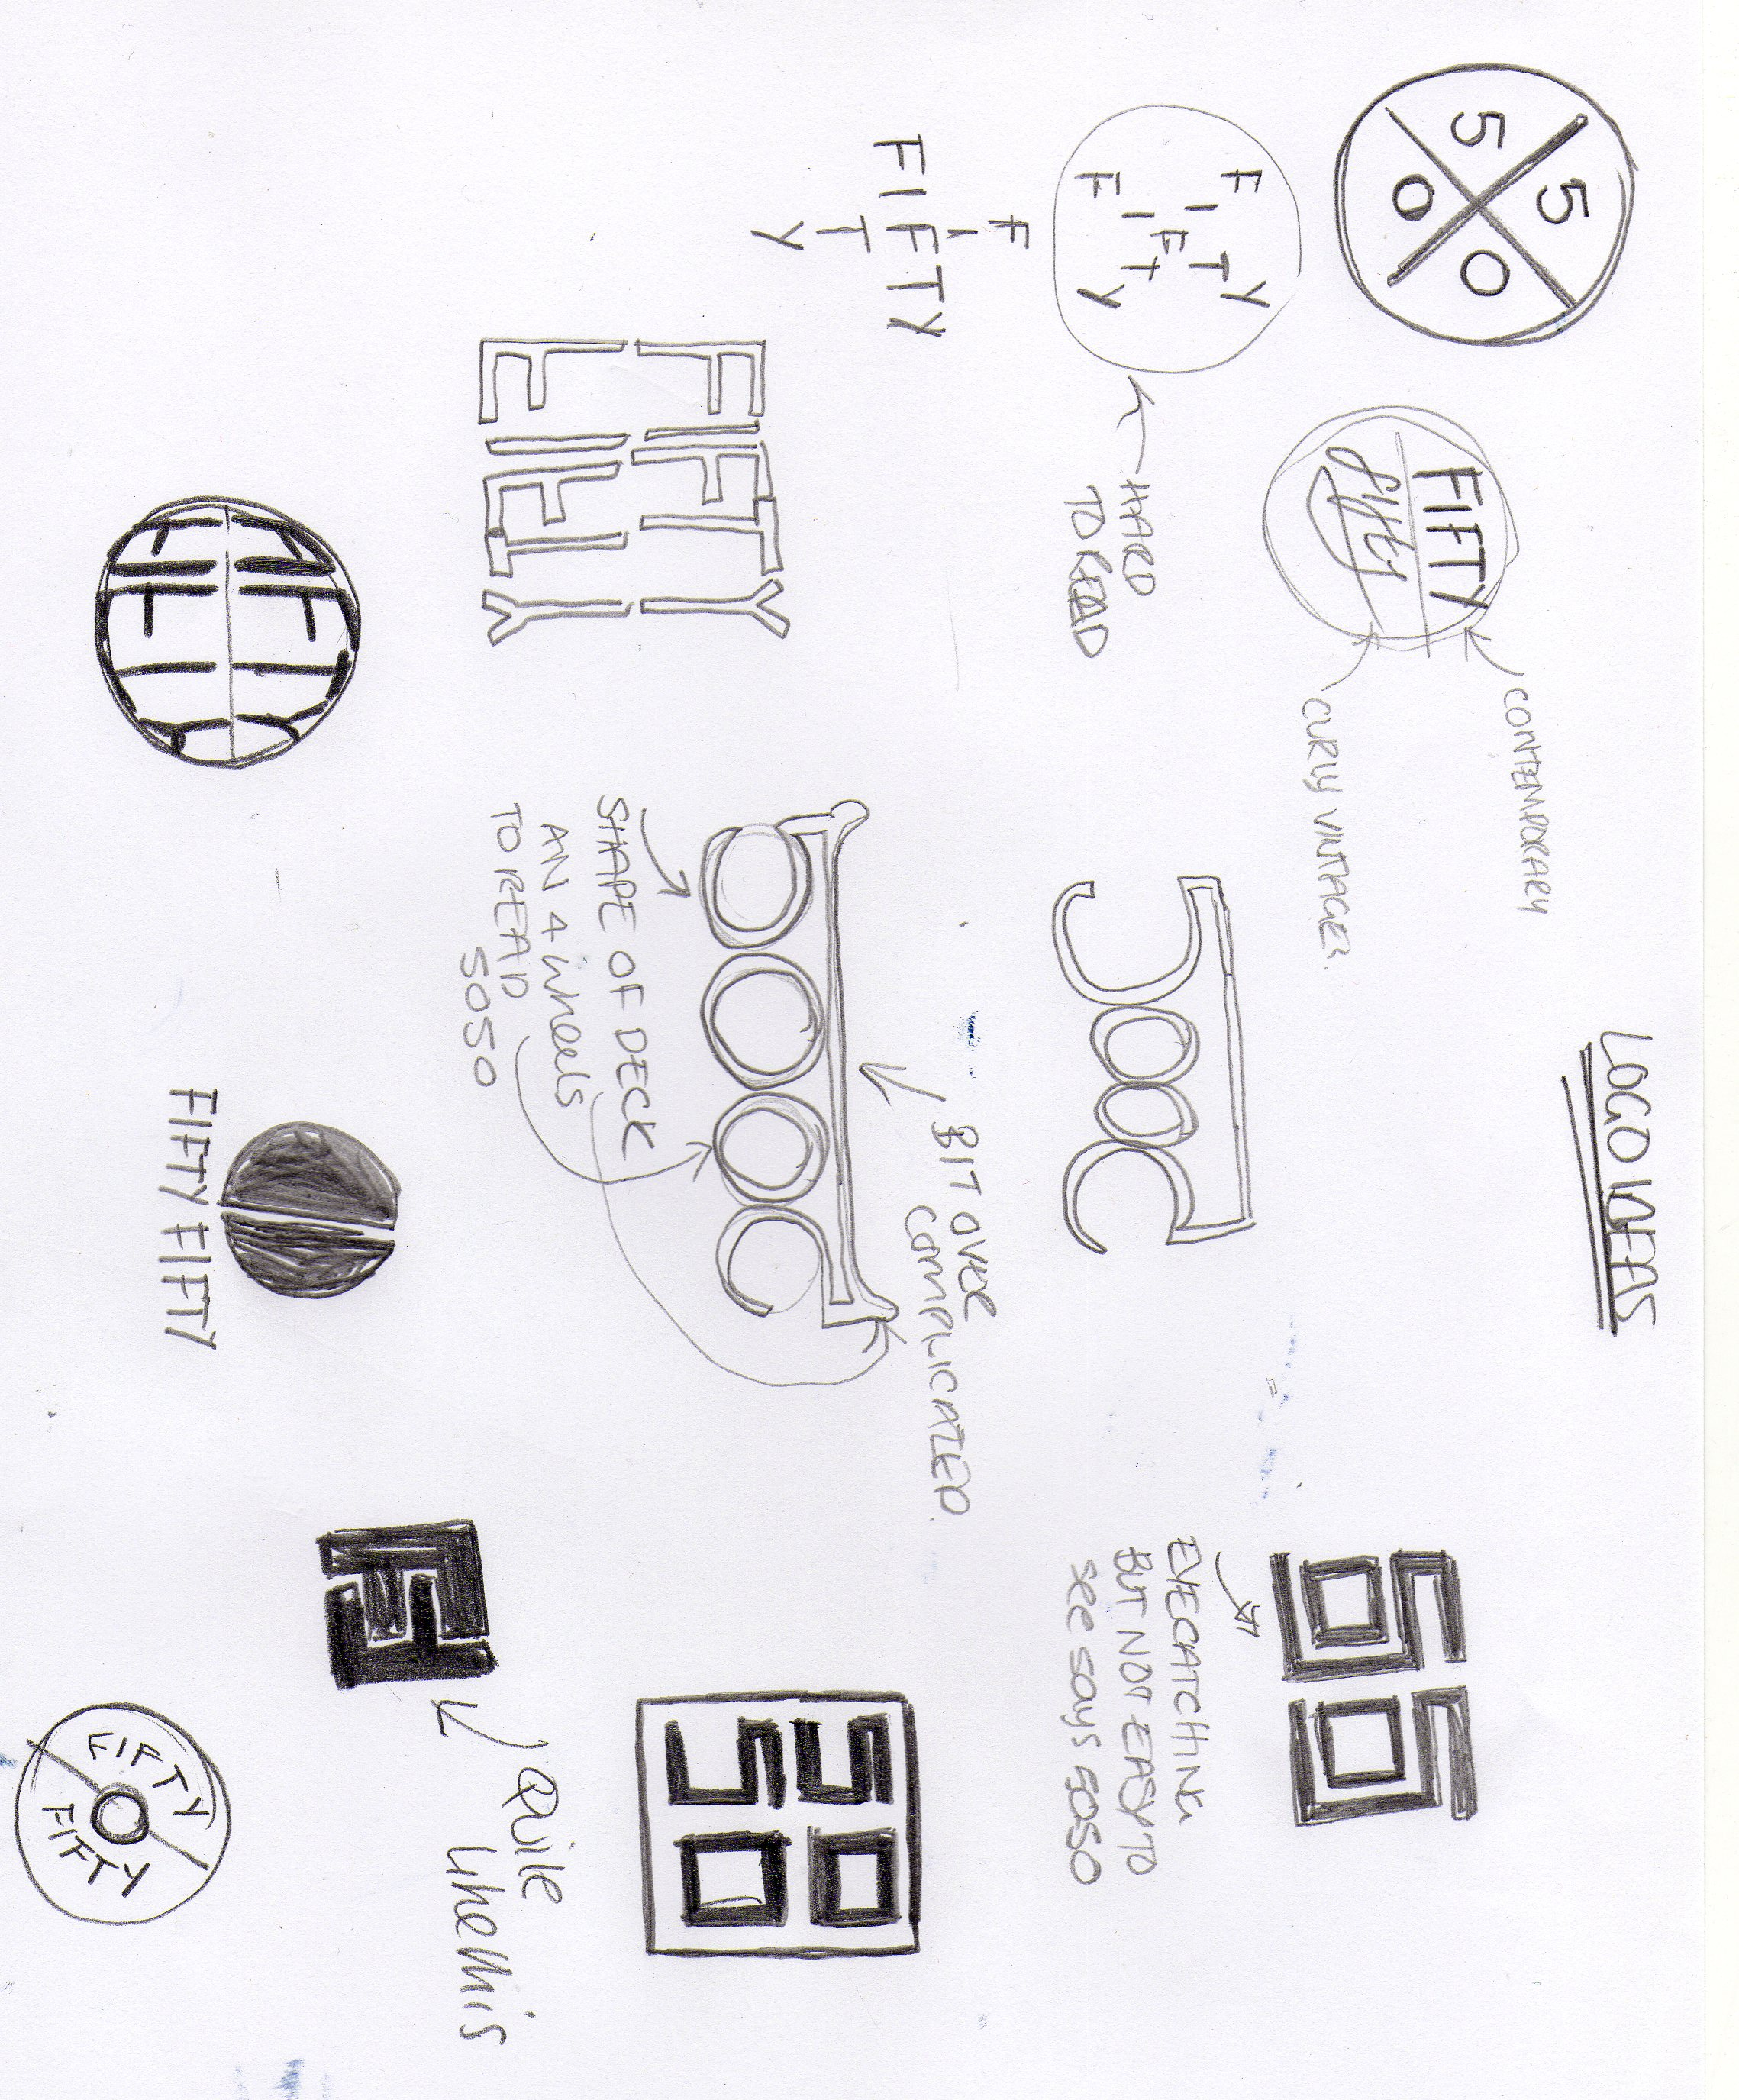 Name Logos Ideas i Did These Logo Ideas in